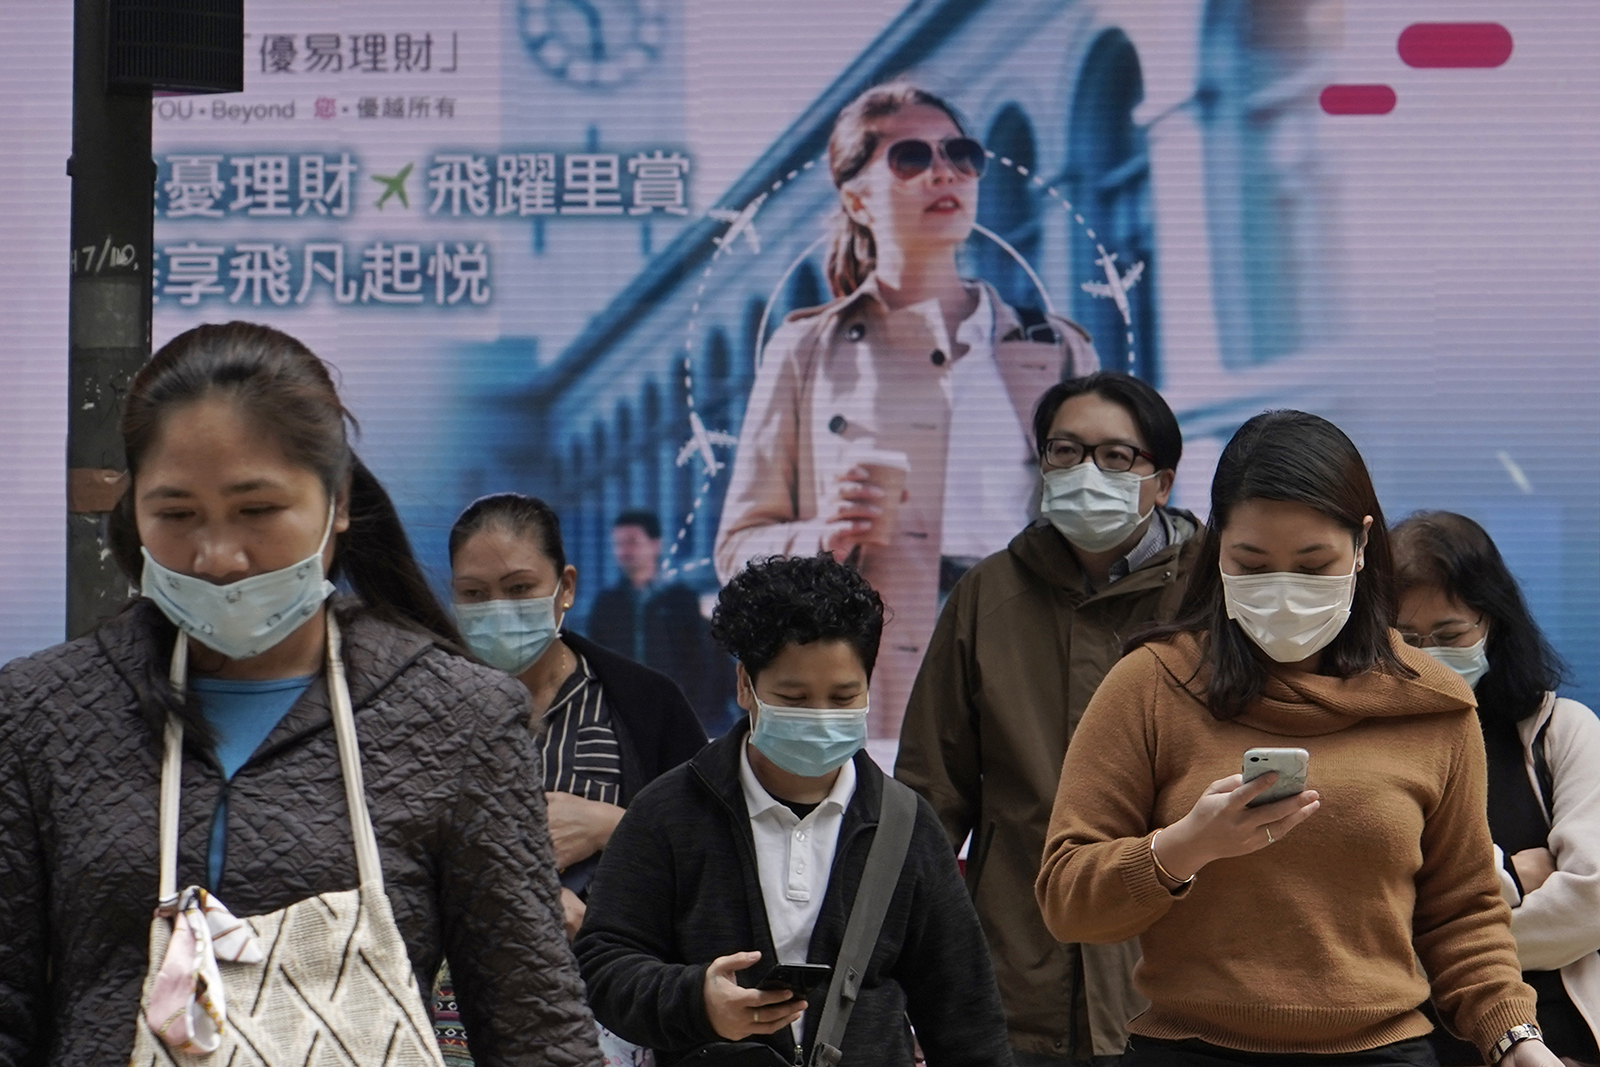 People wearing face masks walk on a street in Central, the business district of Hong Kong, on Tuesday, February 11.